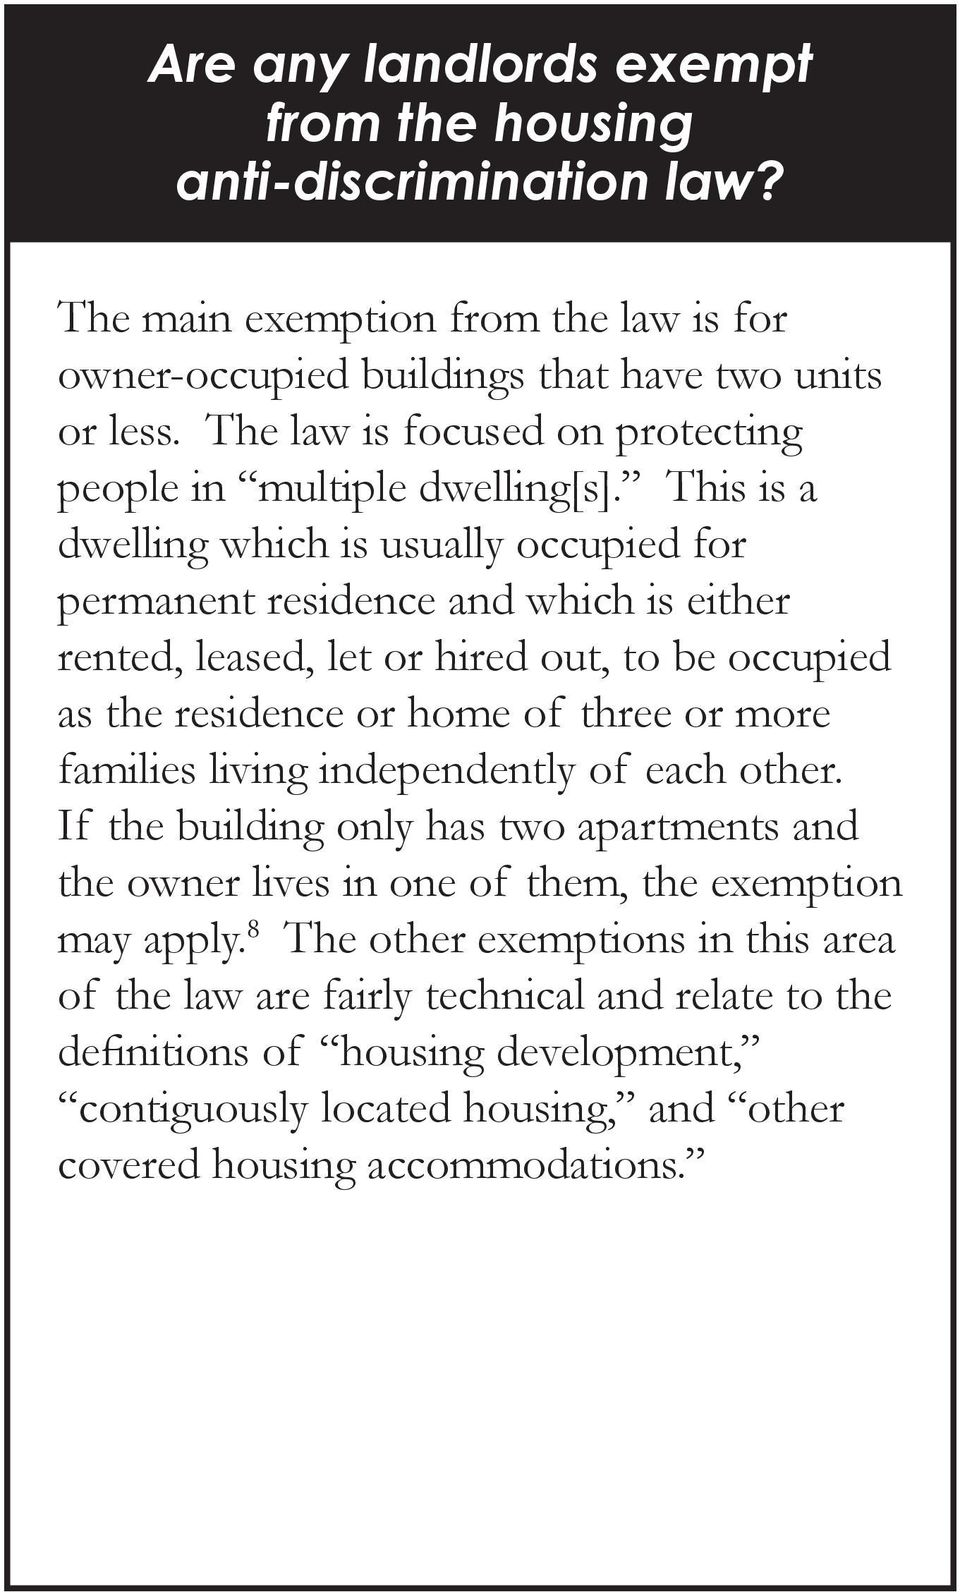 This is a dwelling which is usually occupied for permanent residence and which is either rented, leased, let or hired out, to be occupied as the residence or home of three or more